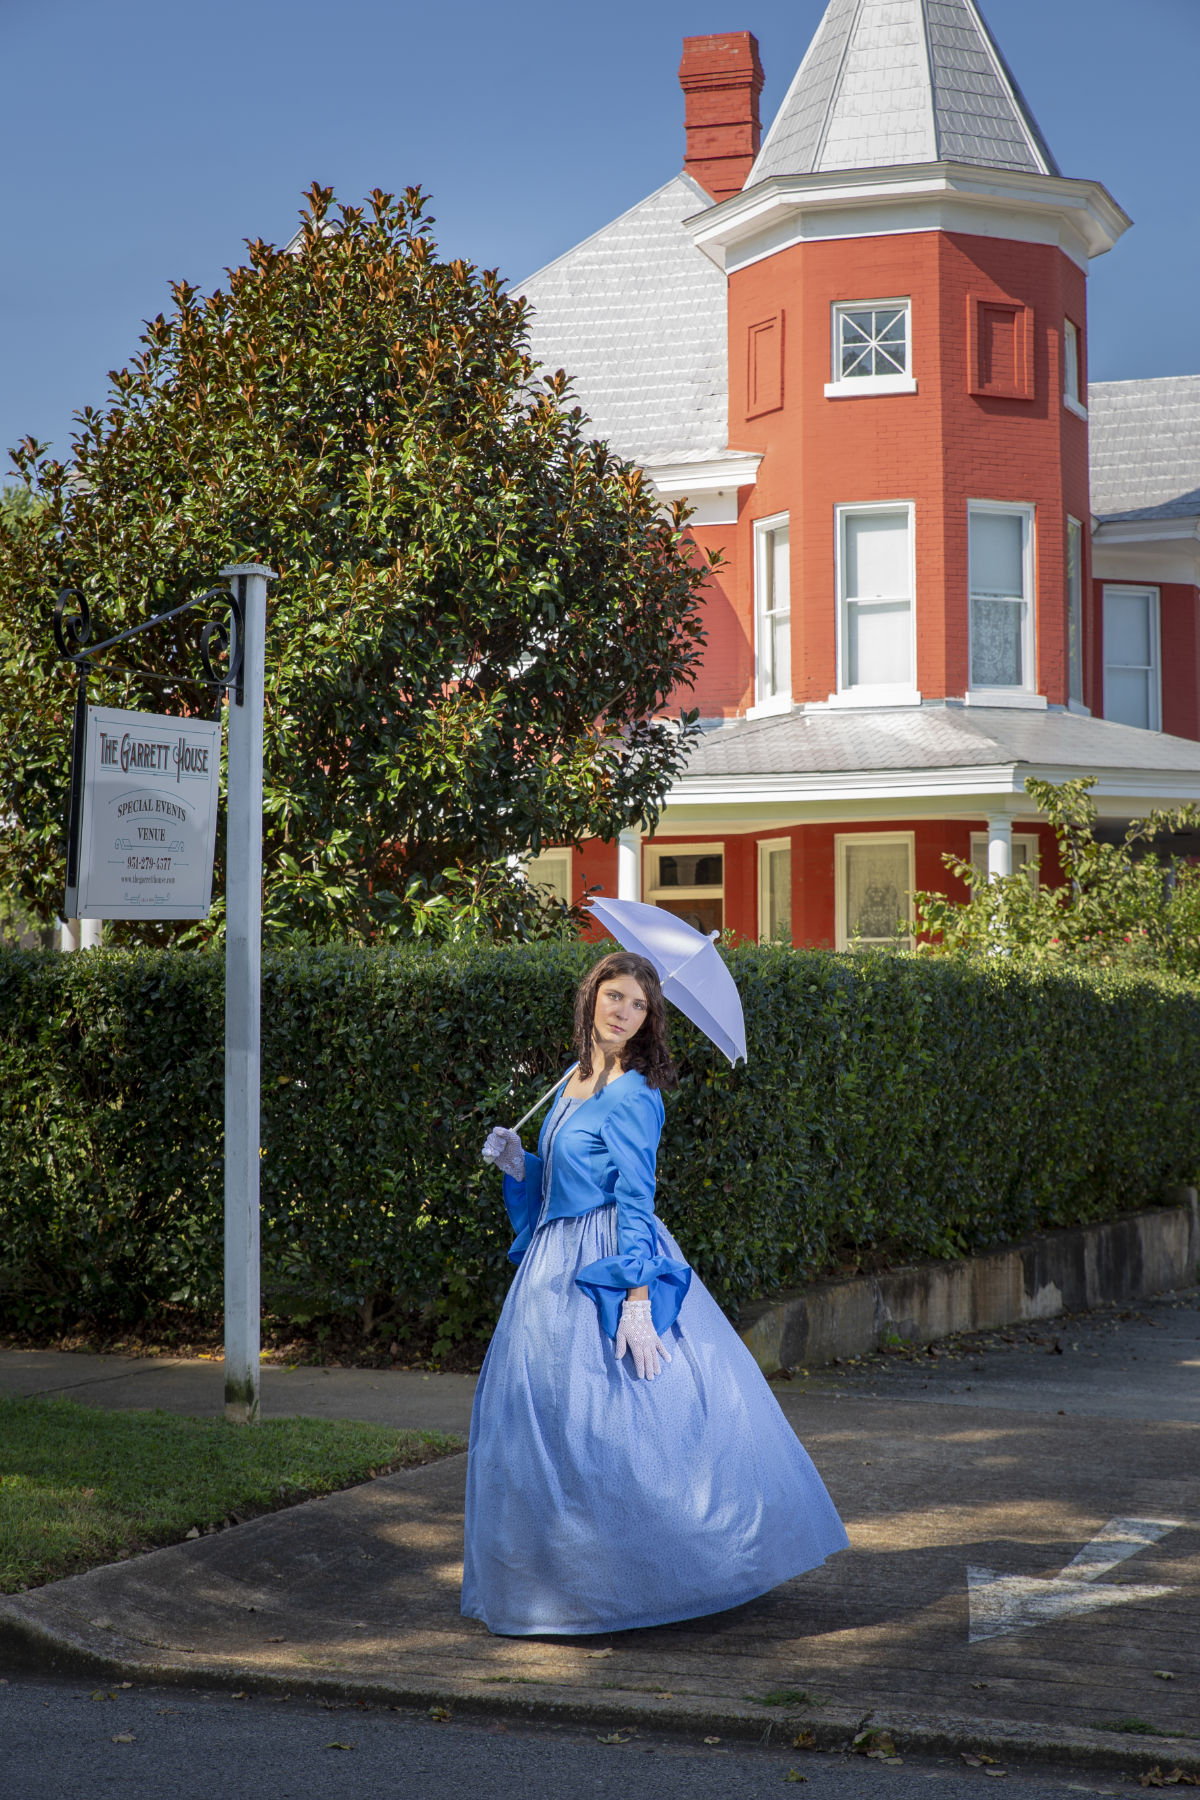 Girl with umbrella in front of victorian house.